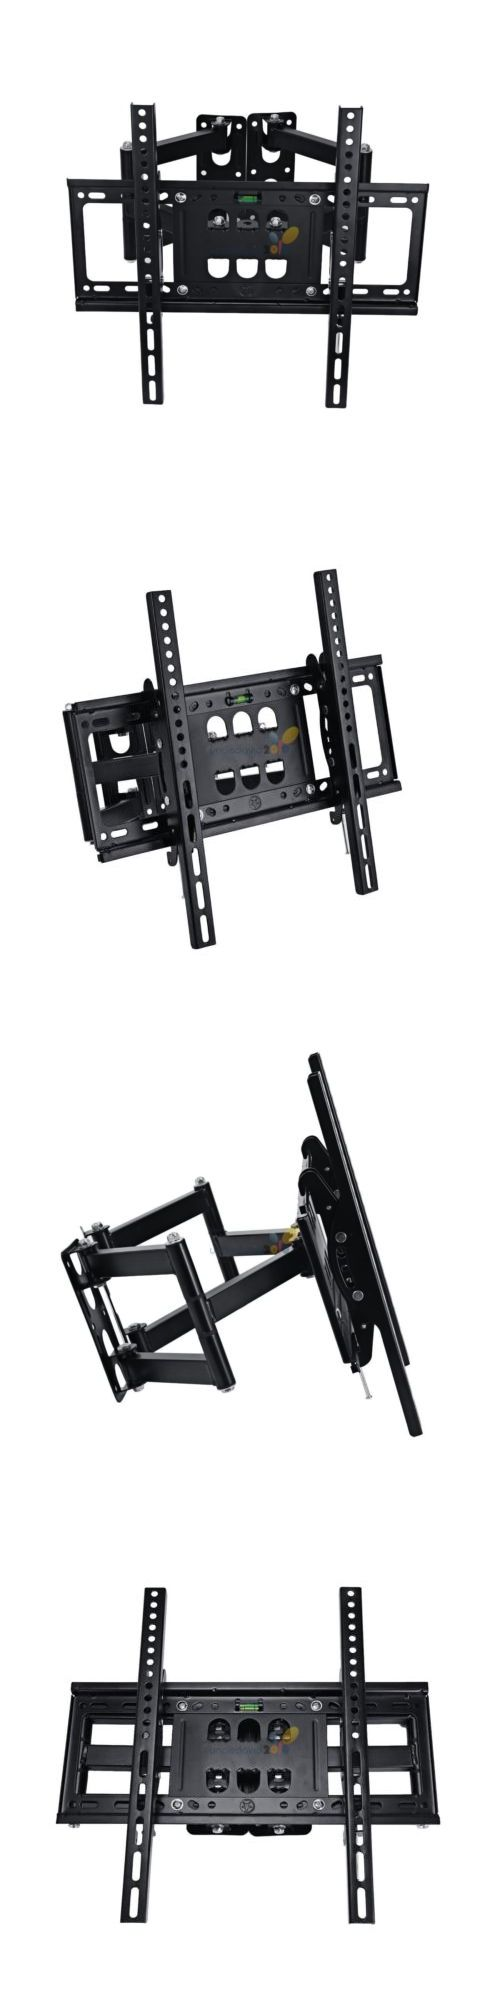 TV Mounts and Brackets: Full Motion Corner Articulating Lcd Led Tv Wall Mount Bracket 32 37 42 47 50 55 BUY IT NOW ONLY: $33.9